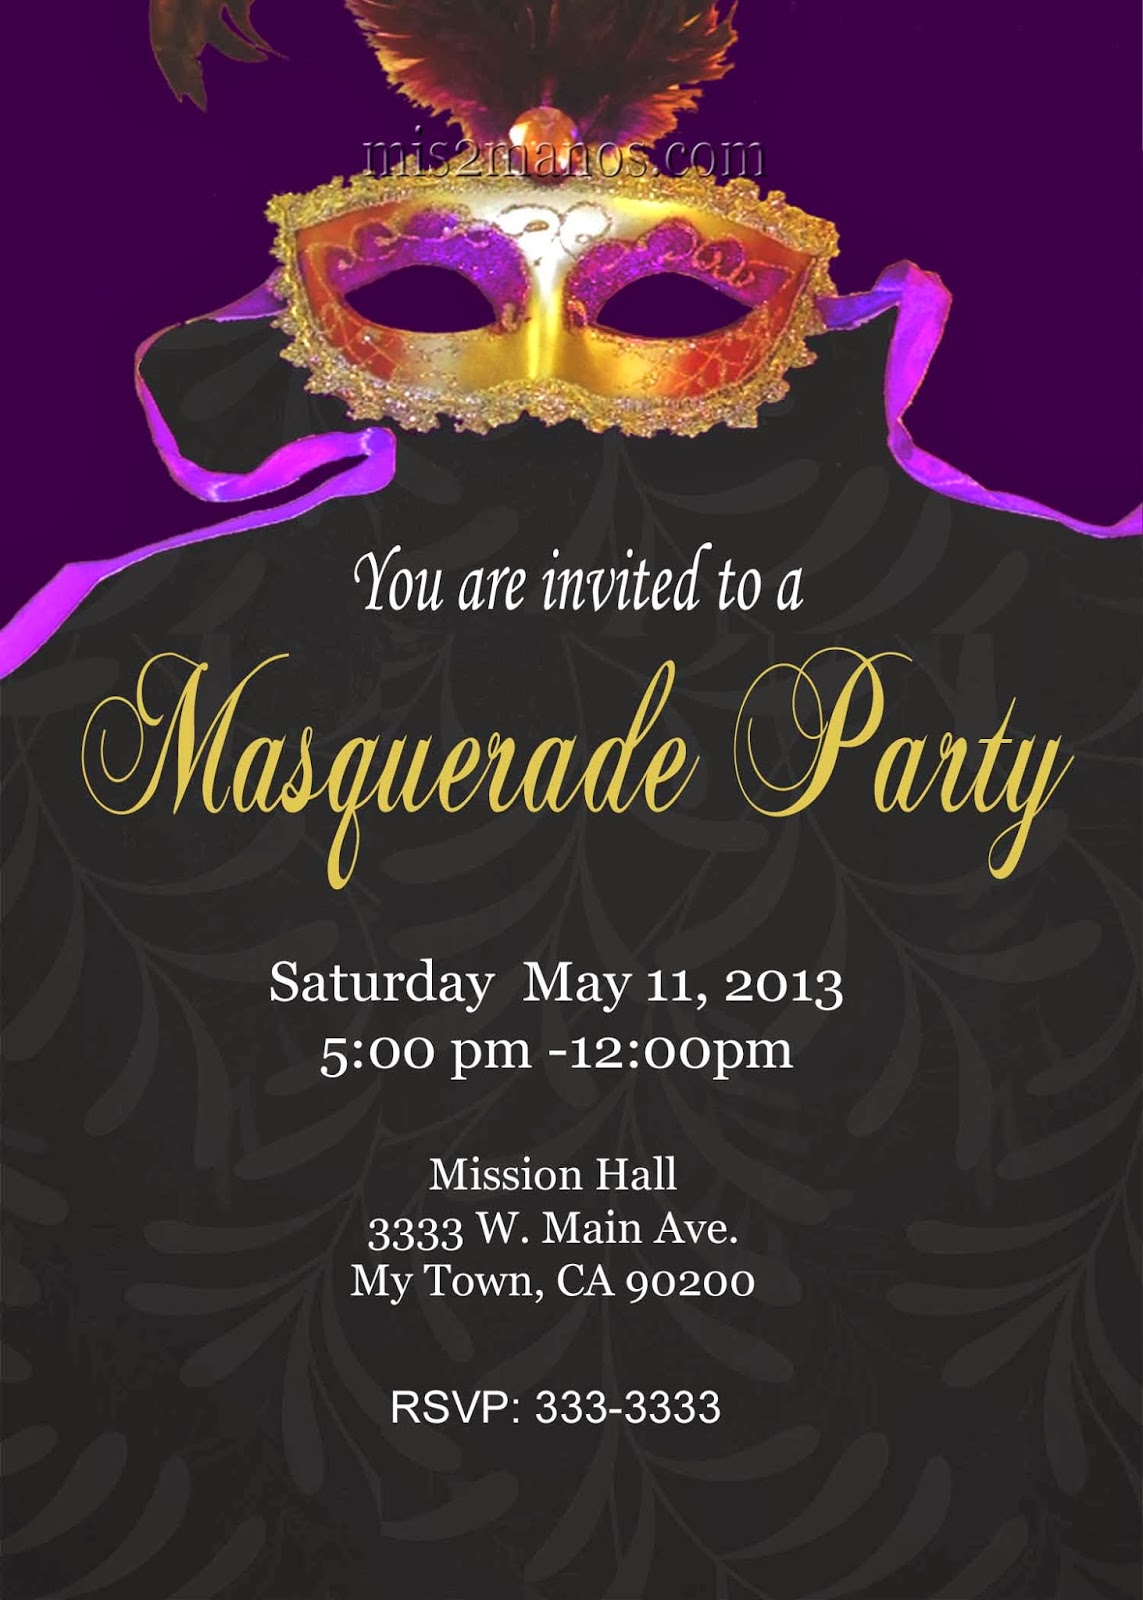 Mis 2 Manos: Made by My Hands: Masquerade Party Mardi Gras ...